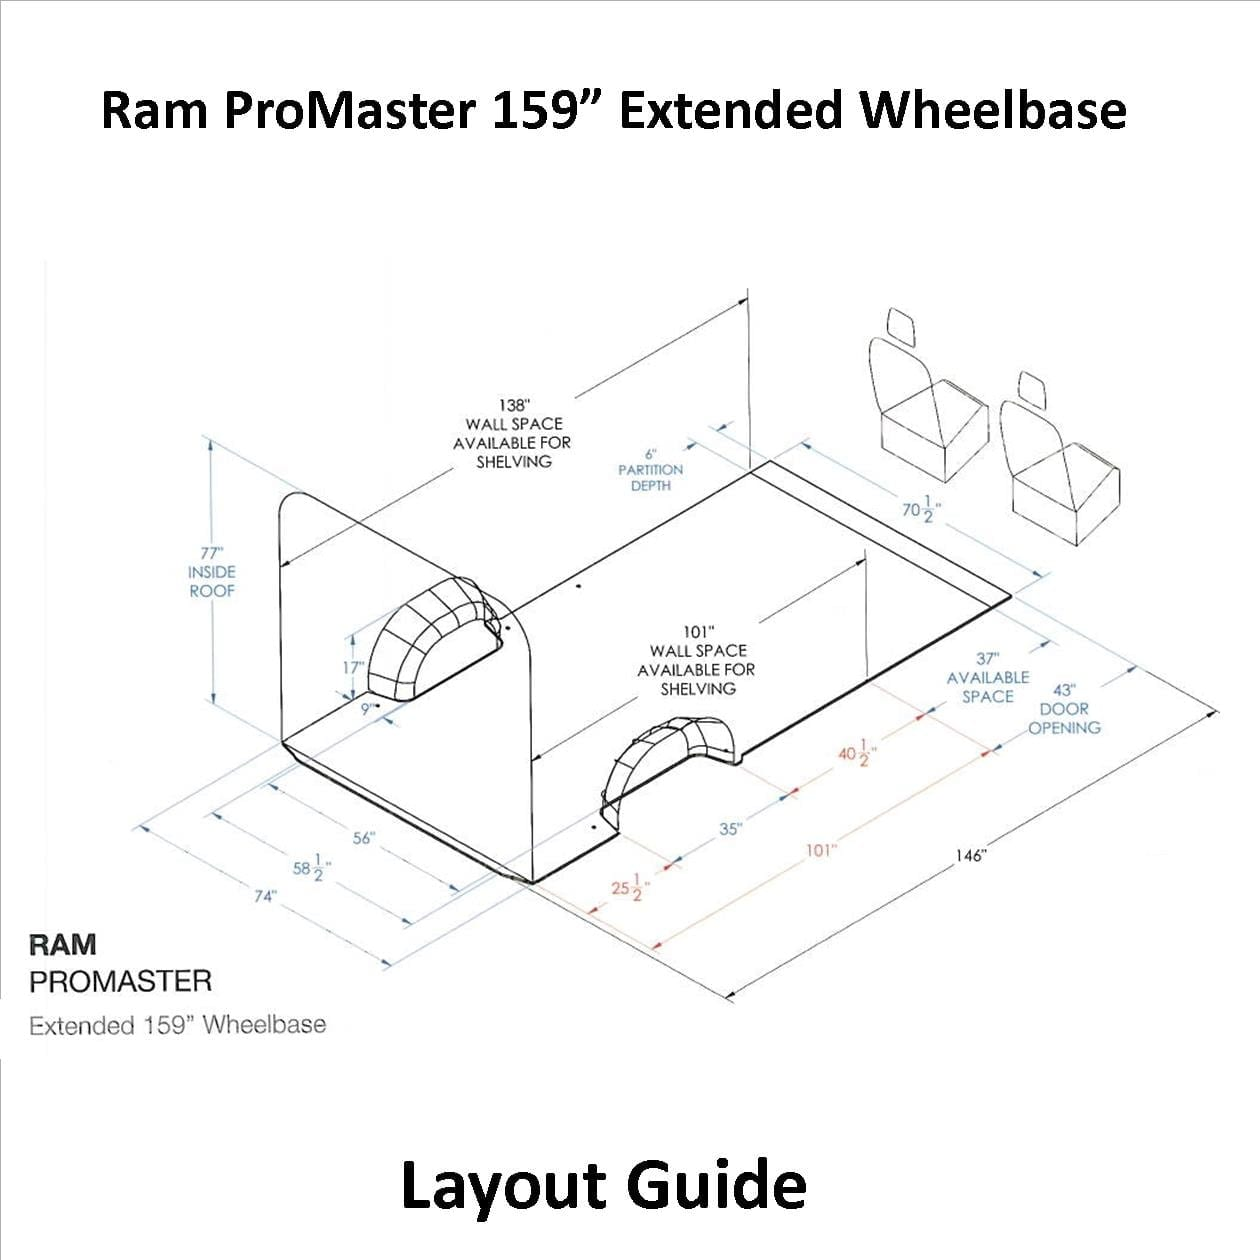 Ram Promaster Layout Guide 159 Ex Wb